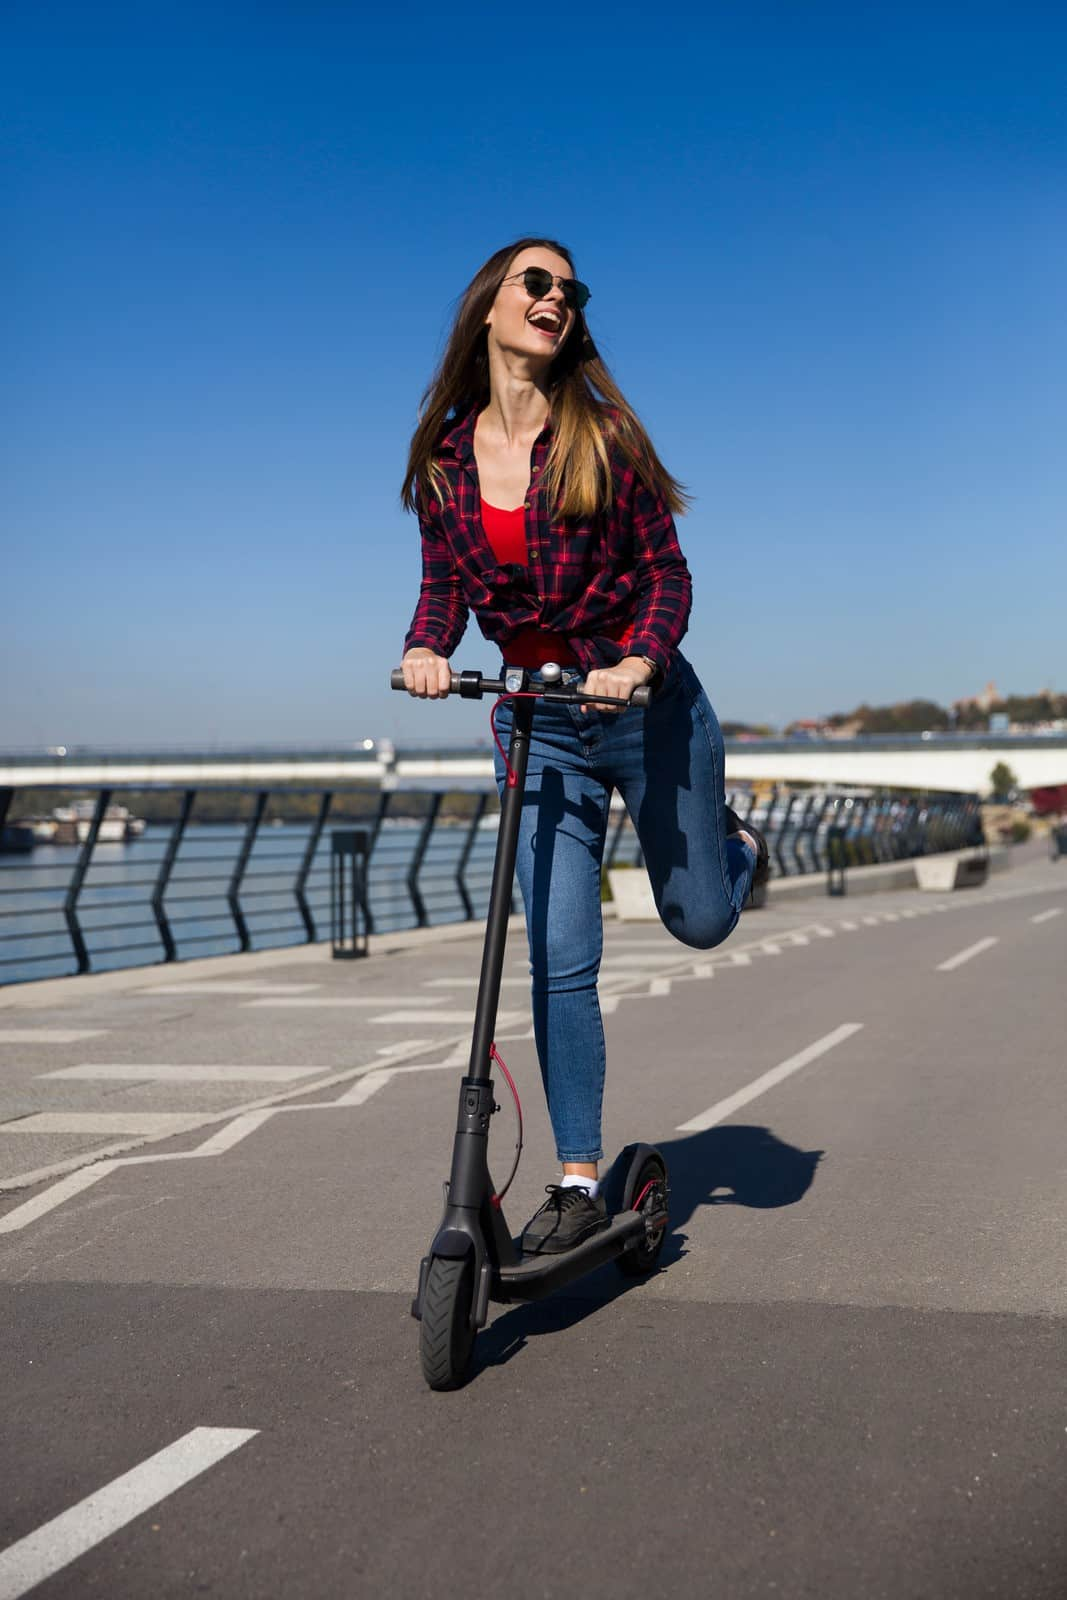 Best 5 Coolest Electric Scooters For Sale In 2020 Review - Smiling Riding on Electric Scooter